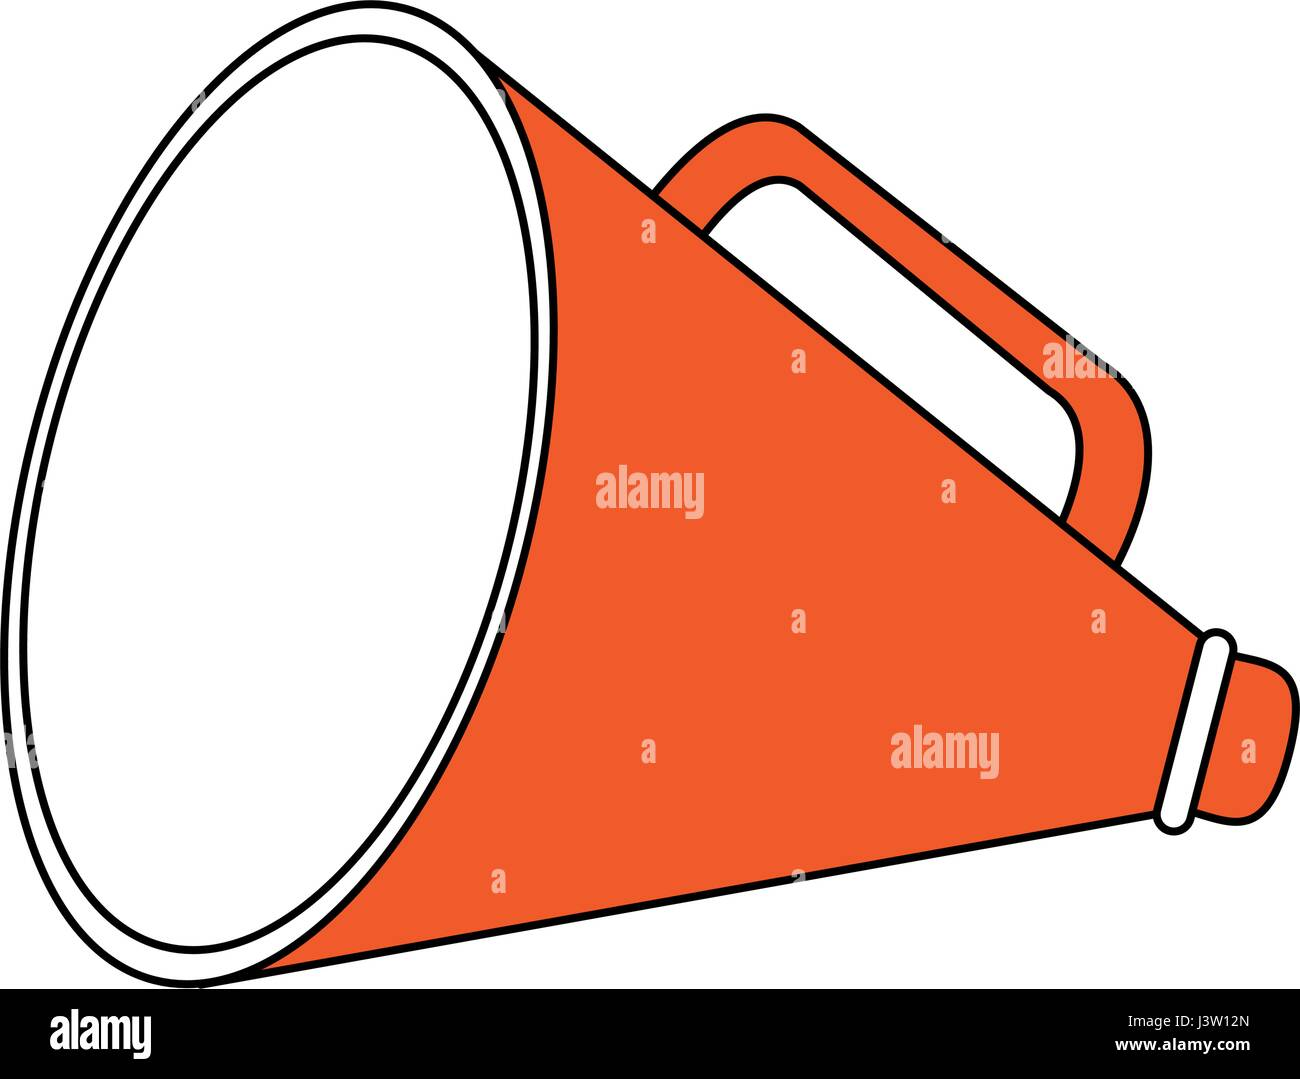 color silhouette image megaphone flat icon - Stock Vector